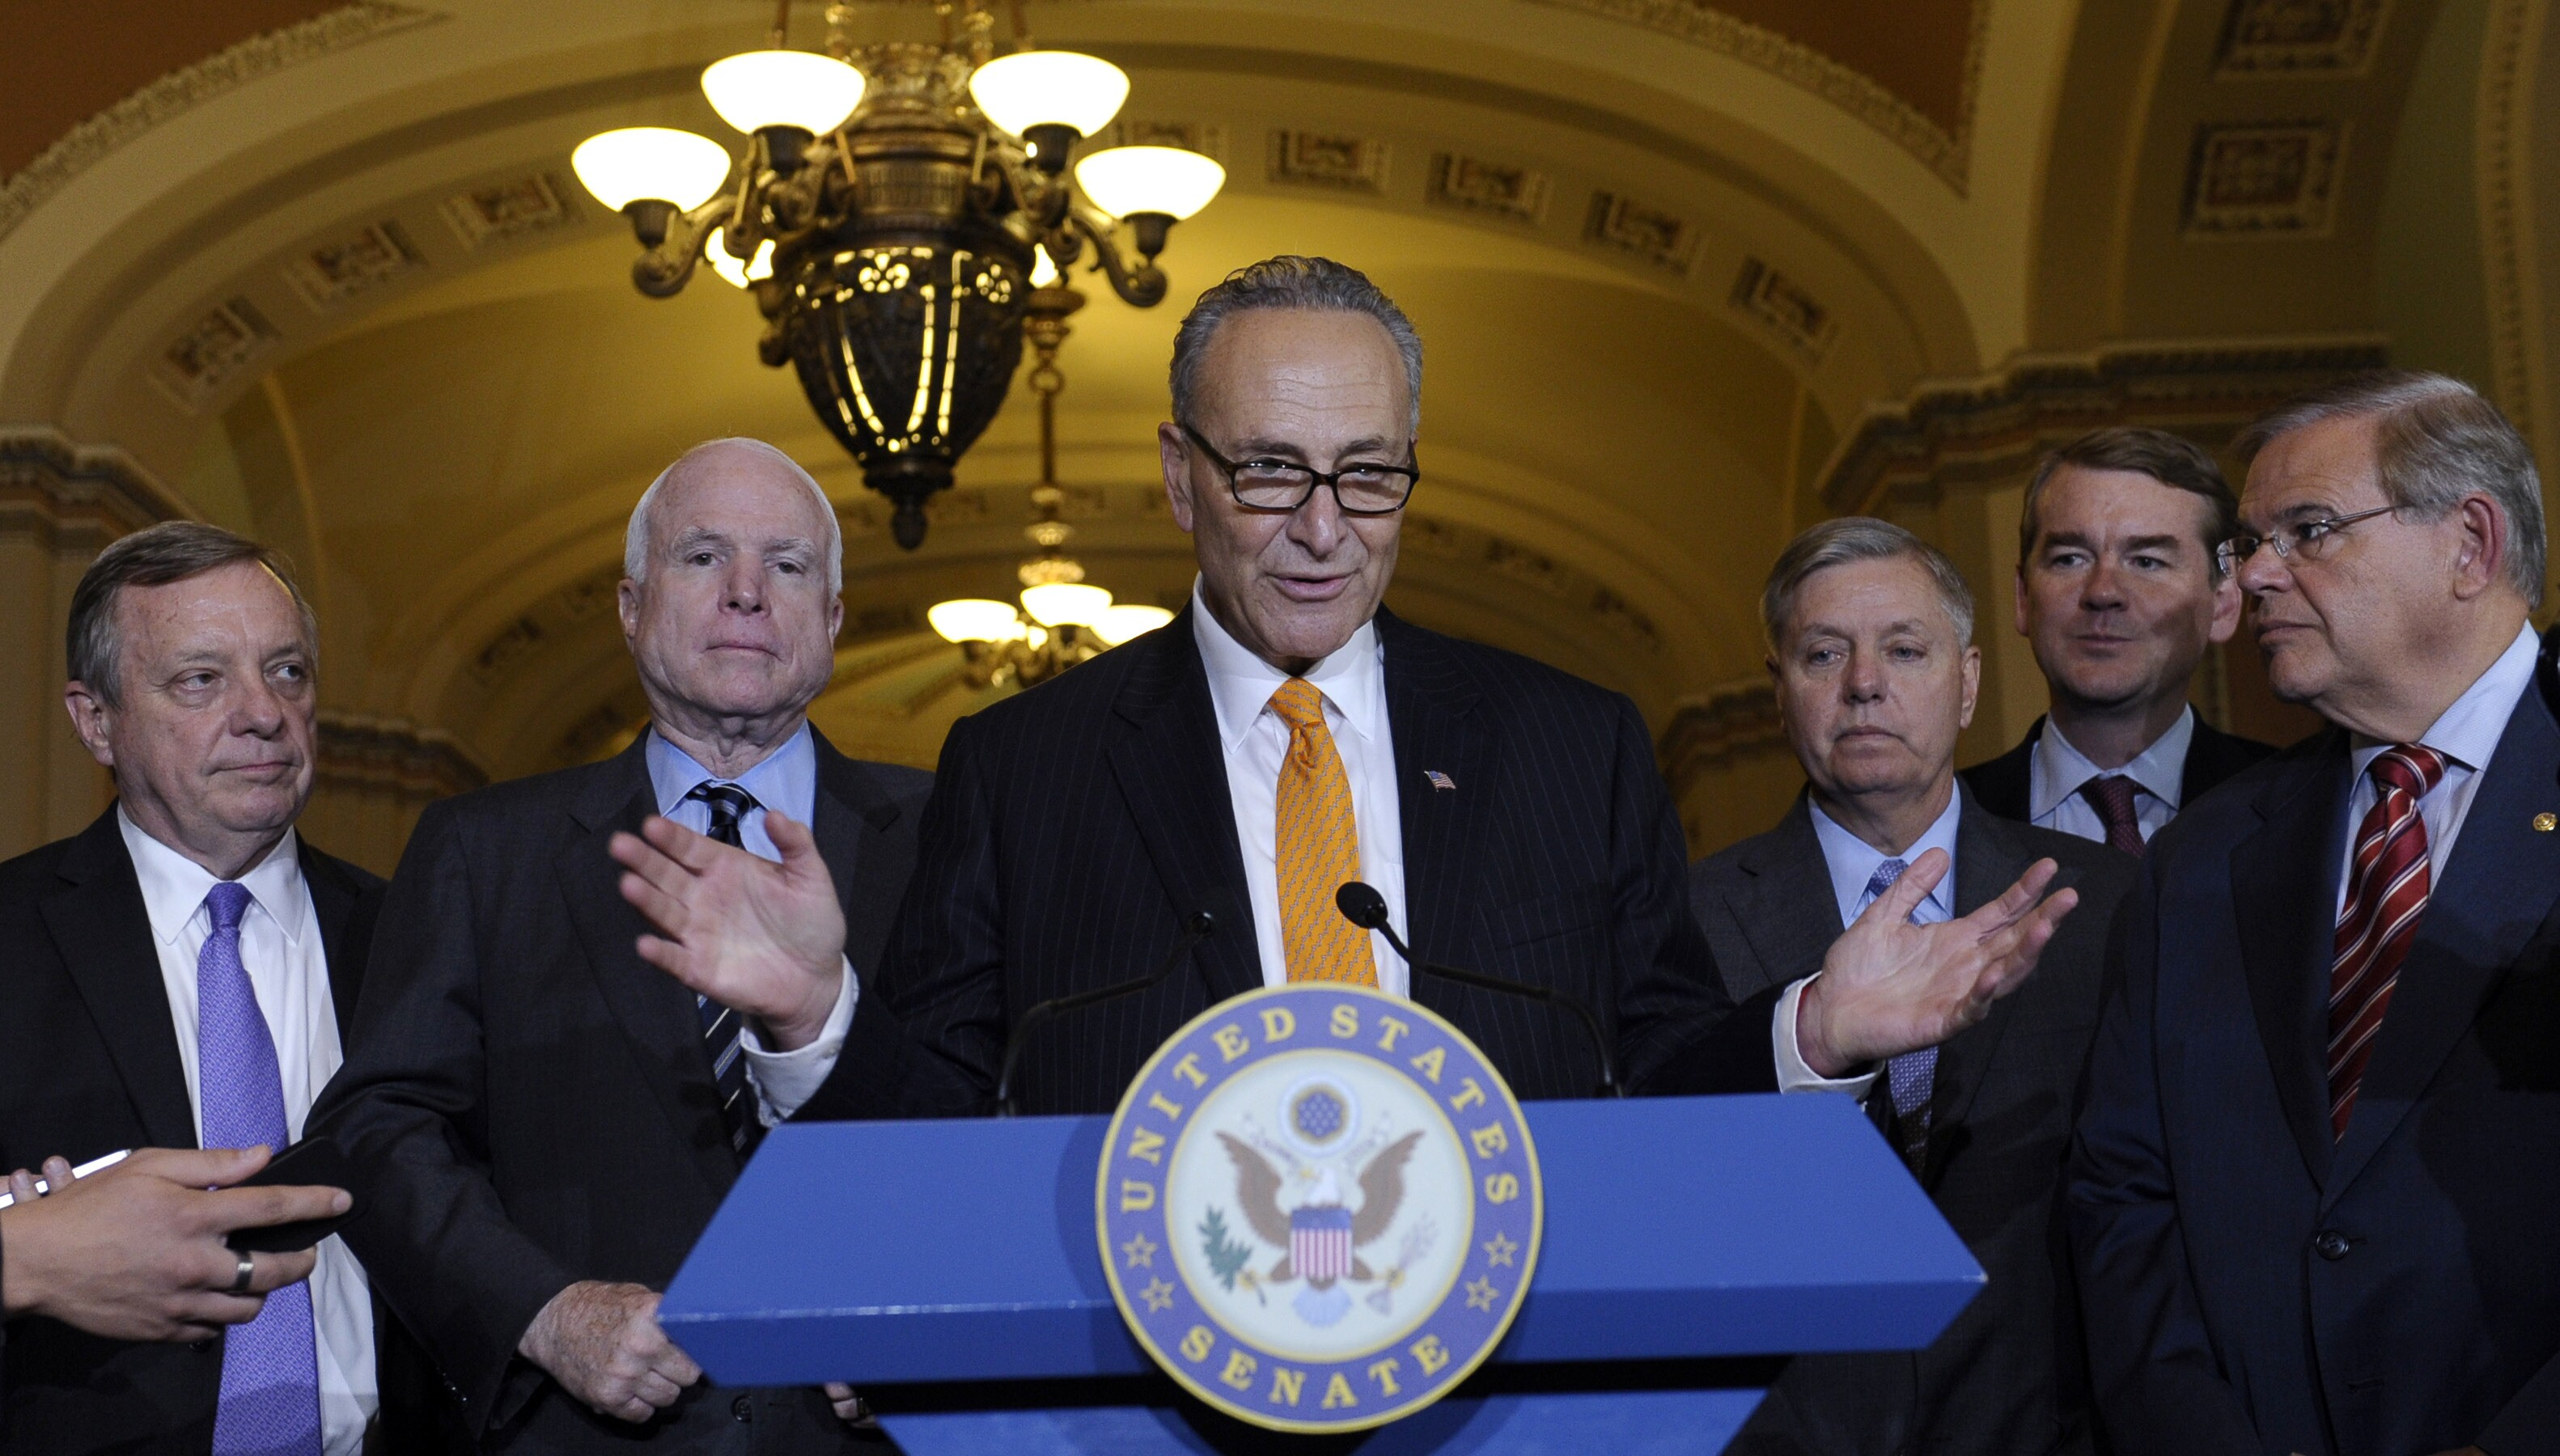 Senate turns up pressure on House to tackle immigration reform